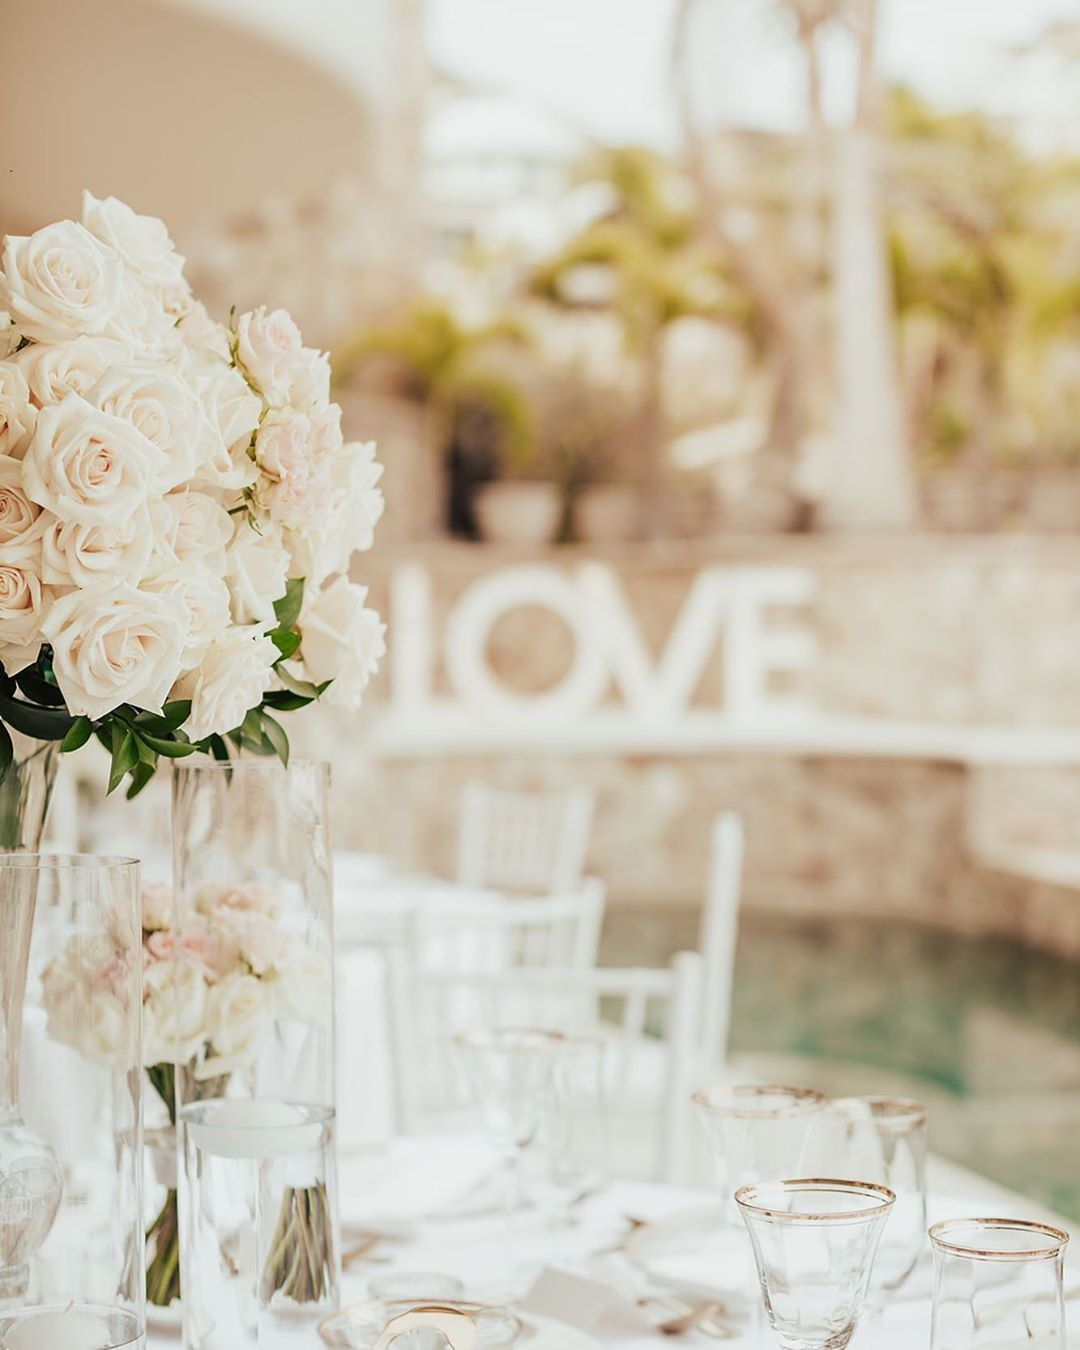 Lots of roses and clean look for this beautiful wedding.